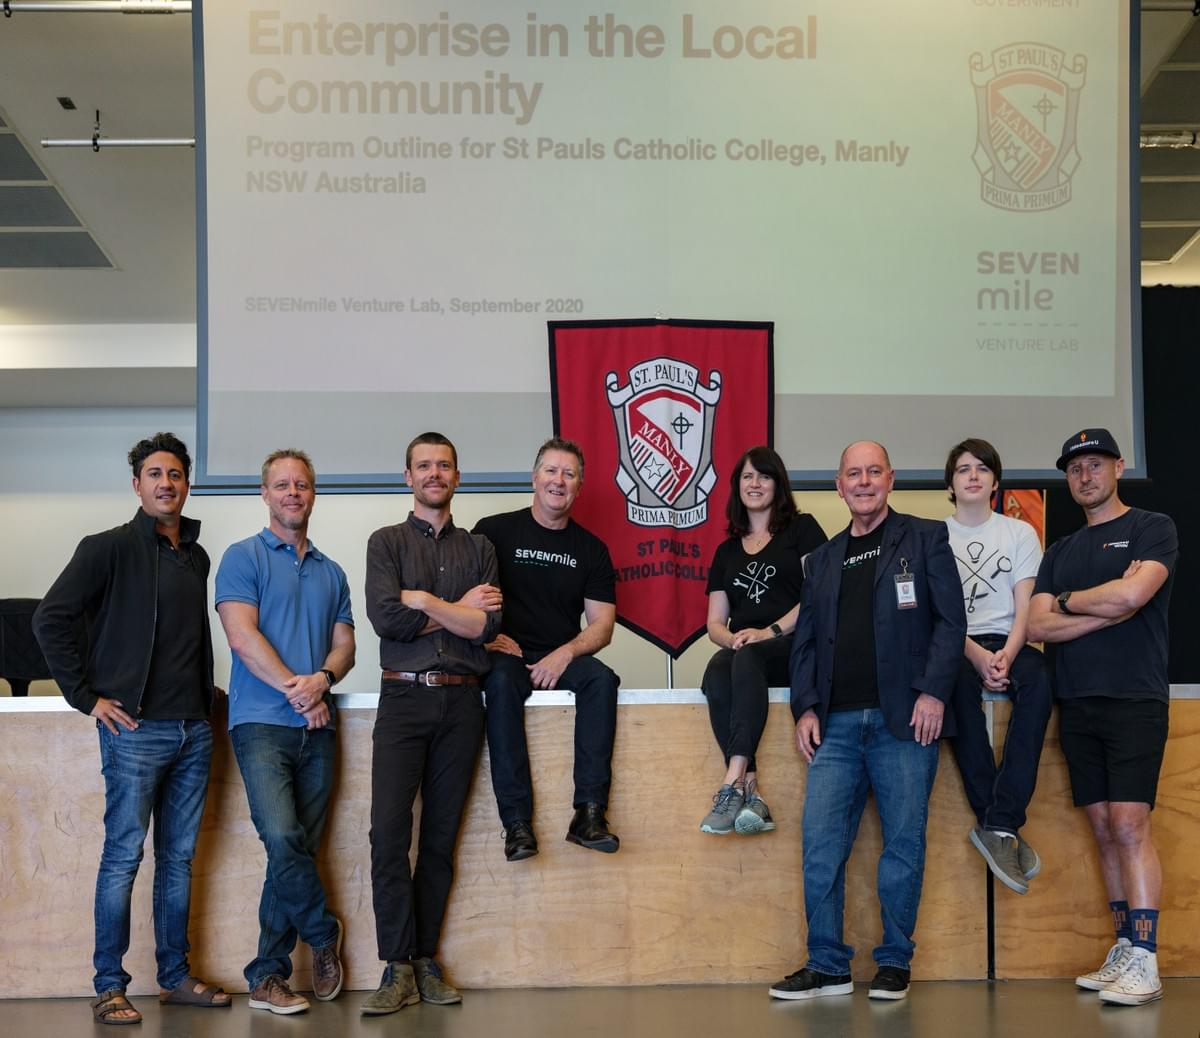 Enterprise in the Community launch day with Adam Fazzani, Jonas Bengtsson, Tim Watson, Mitchell Filby, Julija McDowell, Greg Twemlow, Dragan McDowell, Matt Clarke